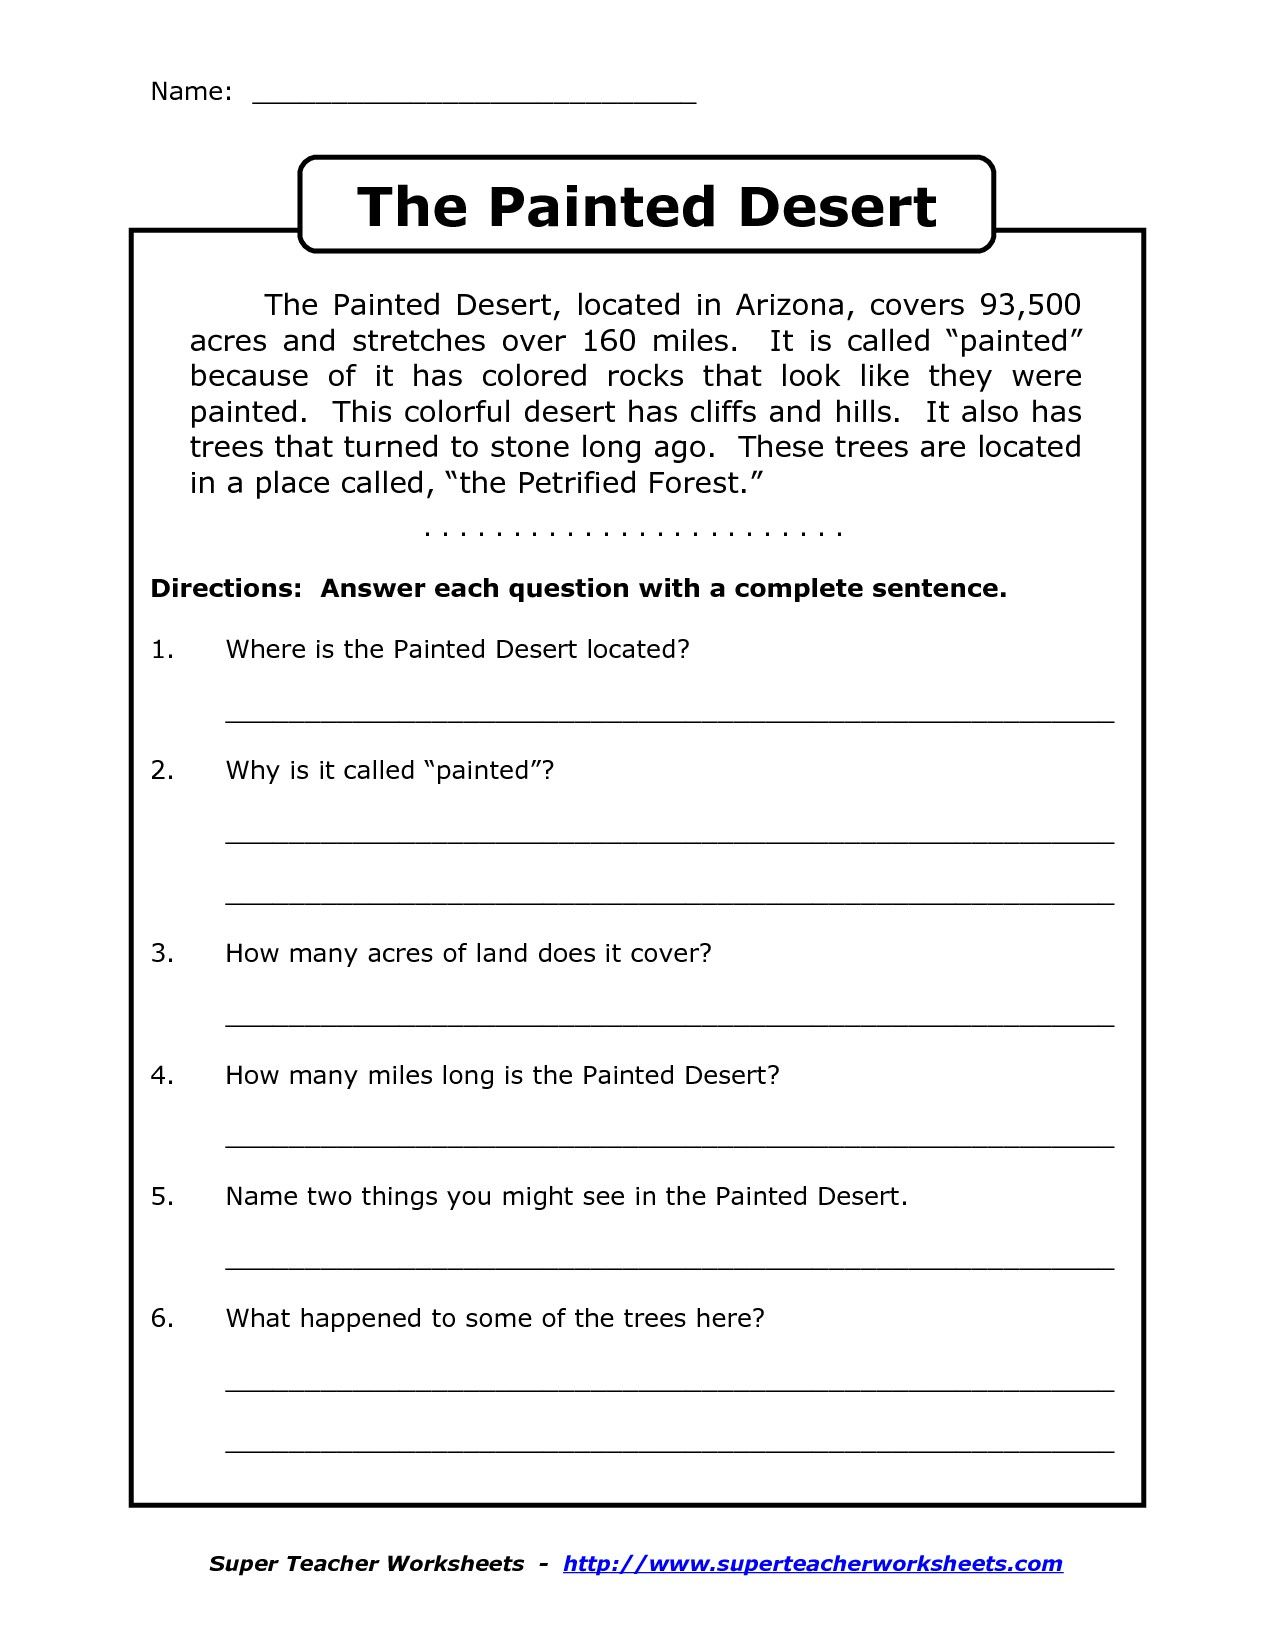 Image Result For Free Printable Worksheets For Grade 4 Comprehension